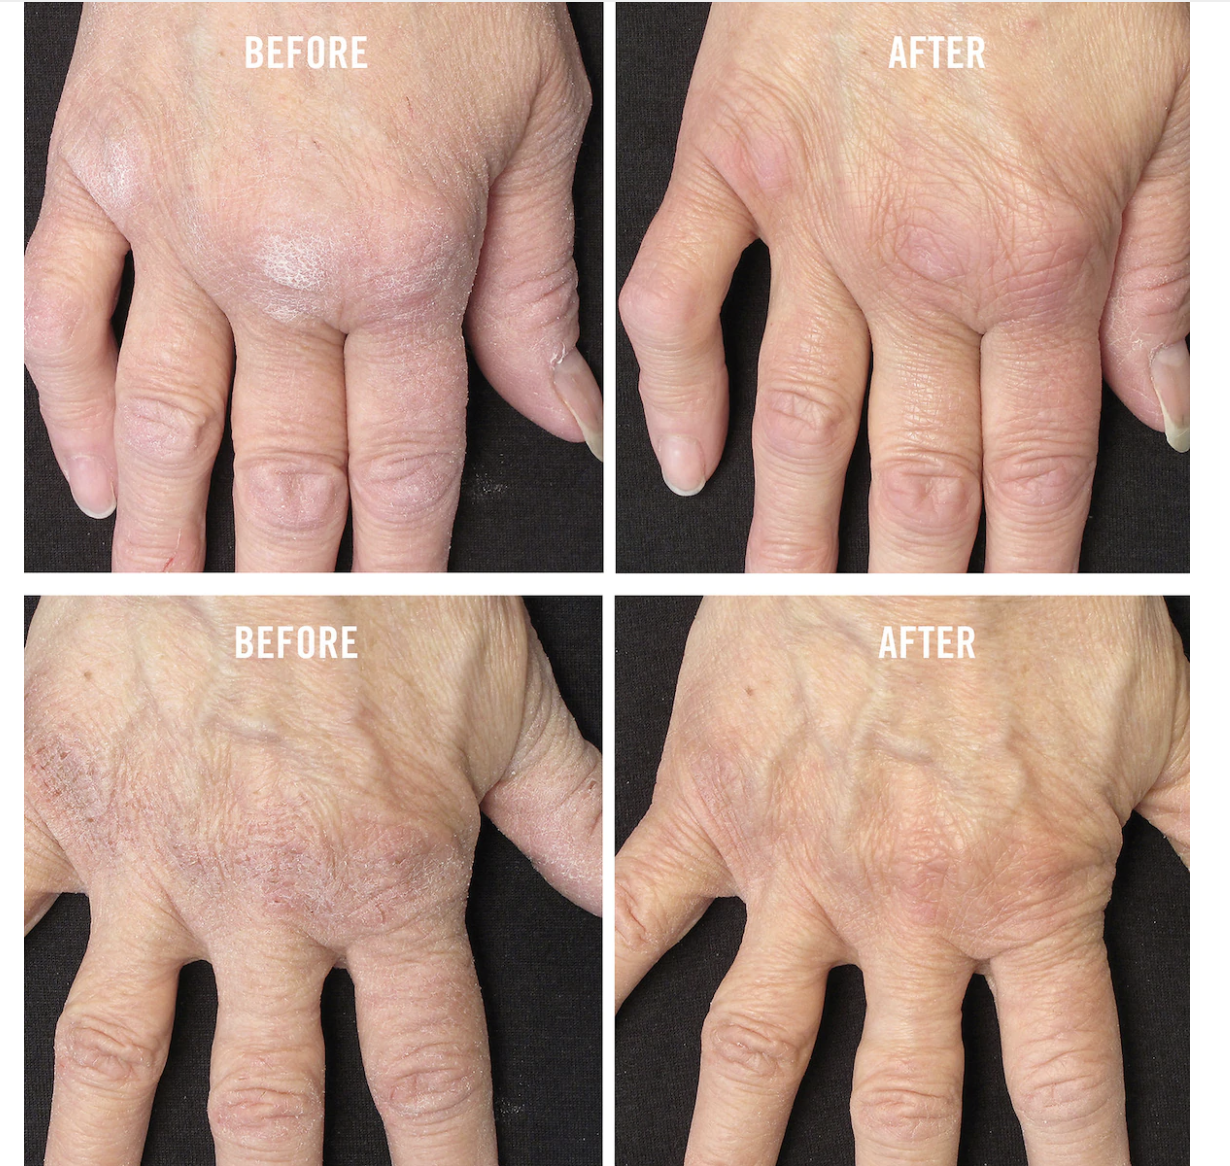 Before and after photos show that the cream has moisturized and repaired dry and cracked hands